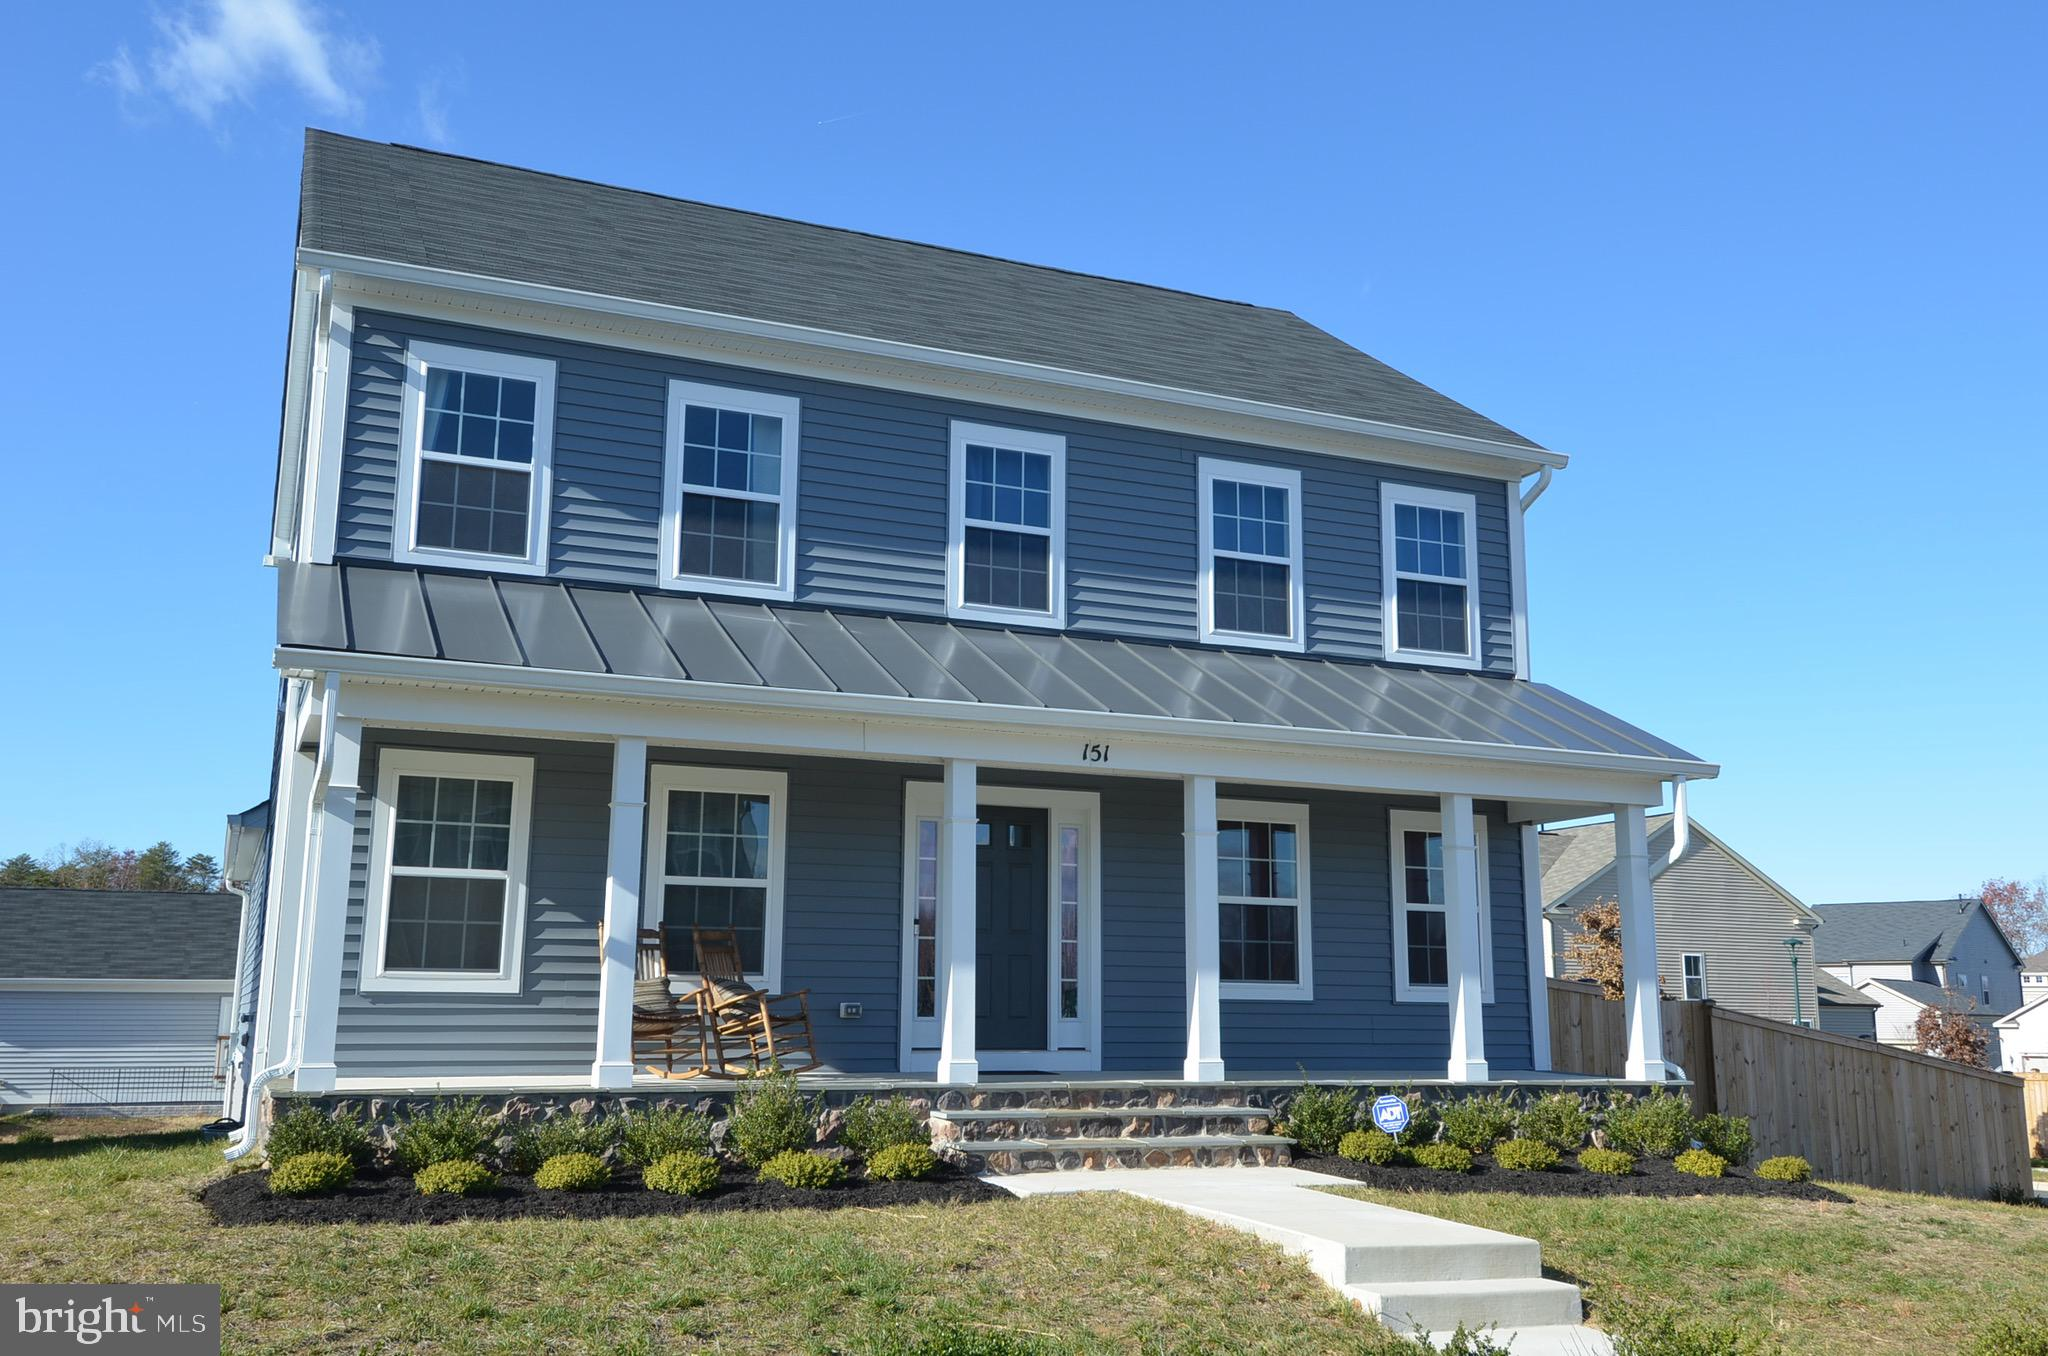 Wonderful almost new home with fully fenced yard and attached 2 car garage.  4 bedroom and 2.5 baths